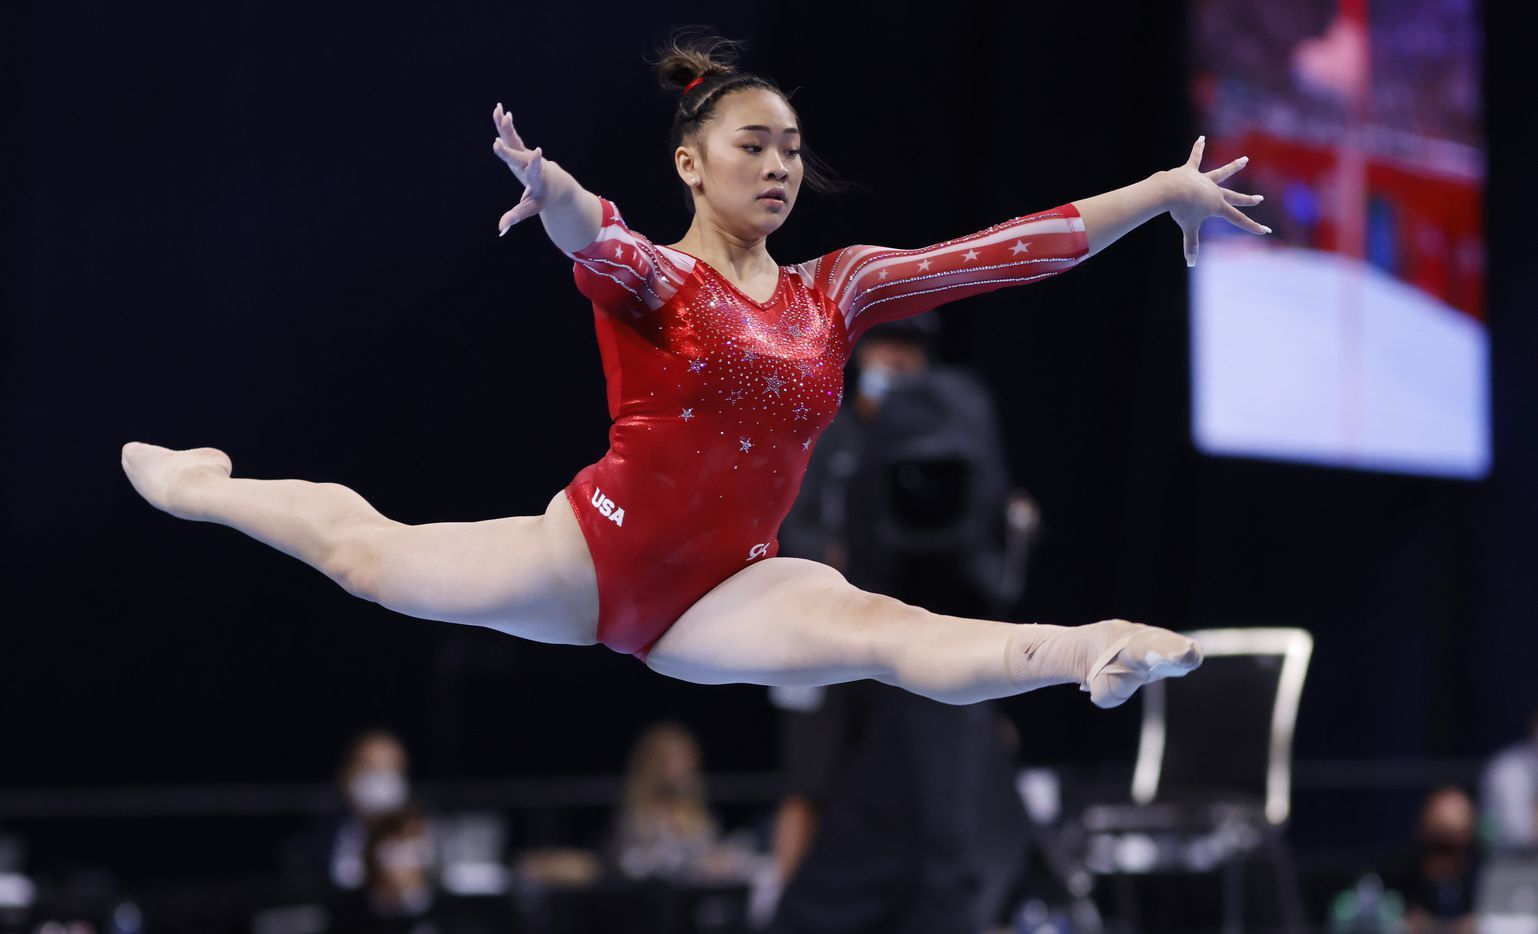 Sunisa Lee during her floor routine during day 2 of the women's 2021 U.S. Olympic Trials at The Dome at America's Center on Saturday, June 27, 2021 in St Louis, Missouri.(Vernon Bryant/The Dallas Morning News)